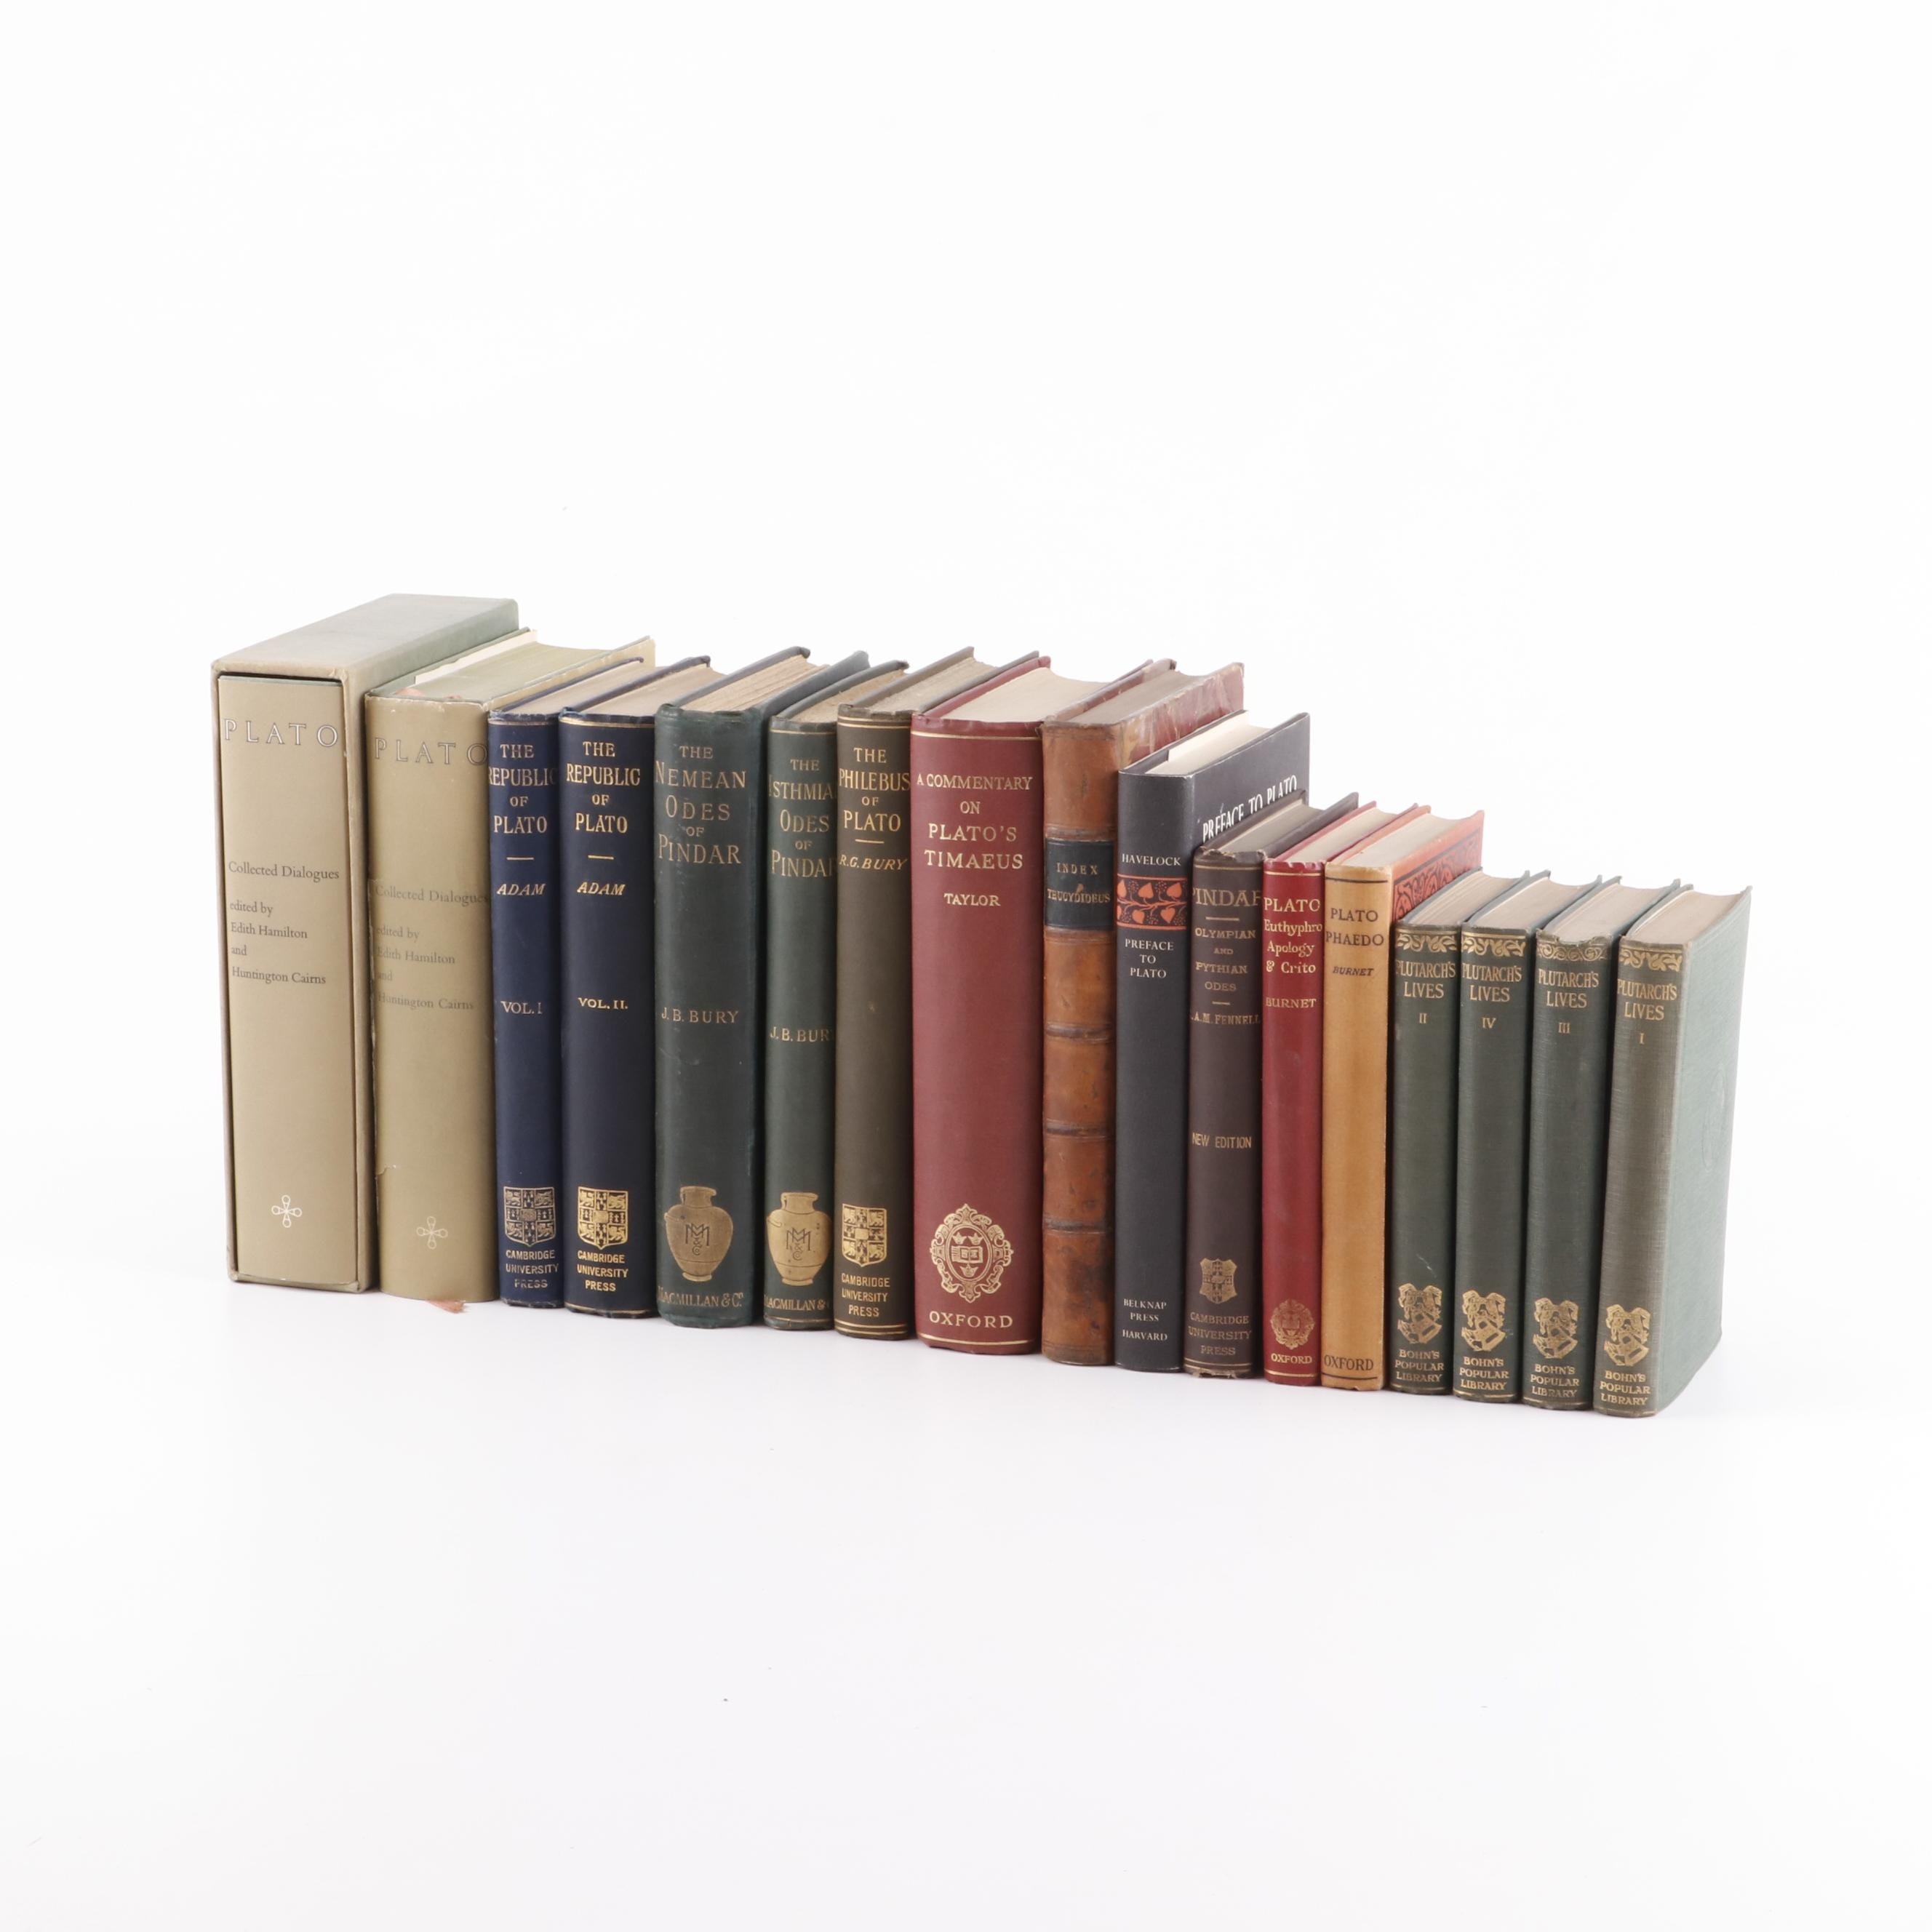 Books Related to Classics and History Featuring Plato and Plutarch